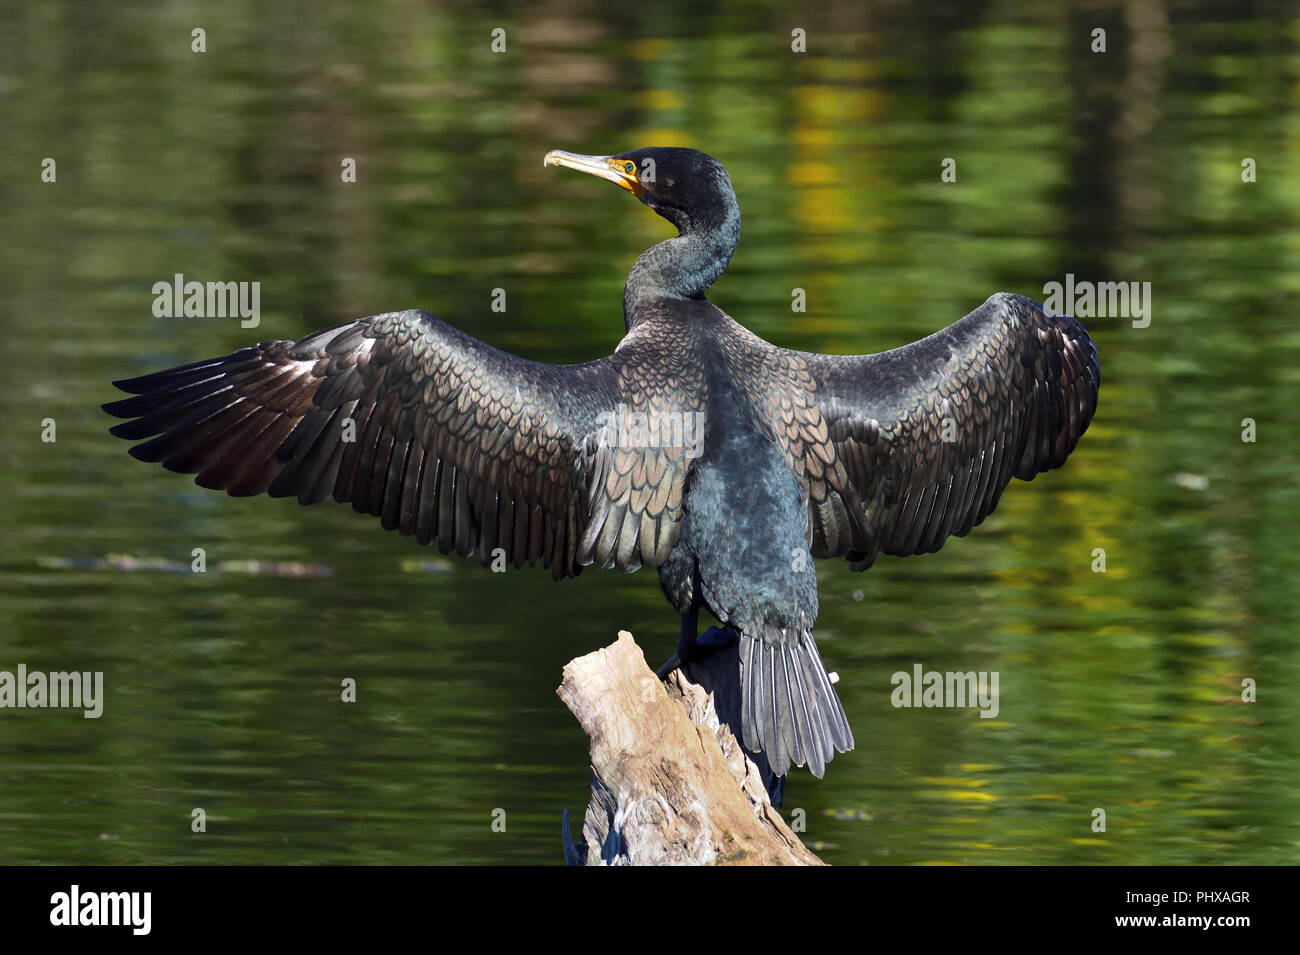 An Australian, Queensland Great Cormorant ( Phalacrocorax carbo ) drying its wings perched on an old log in a Lagoon - Stock Image